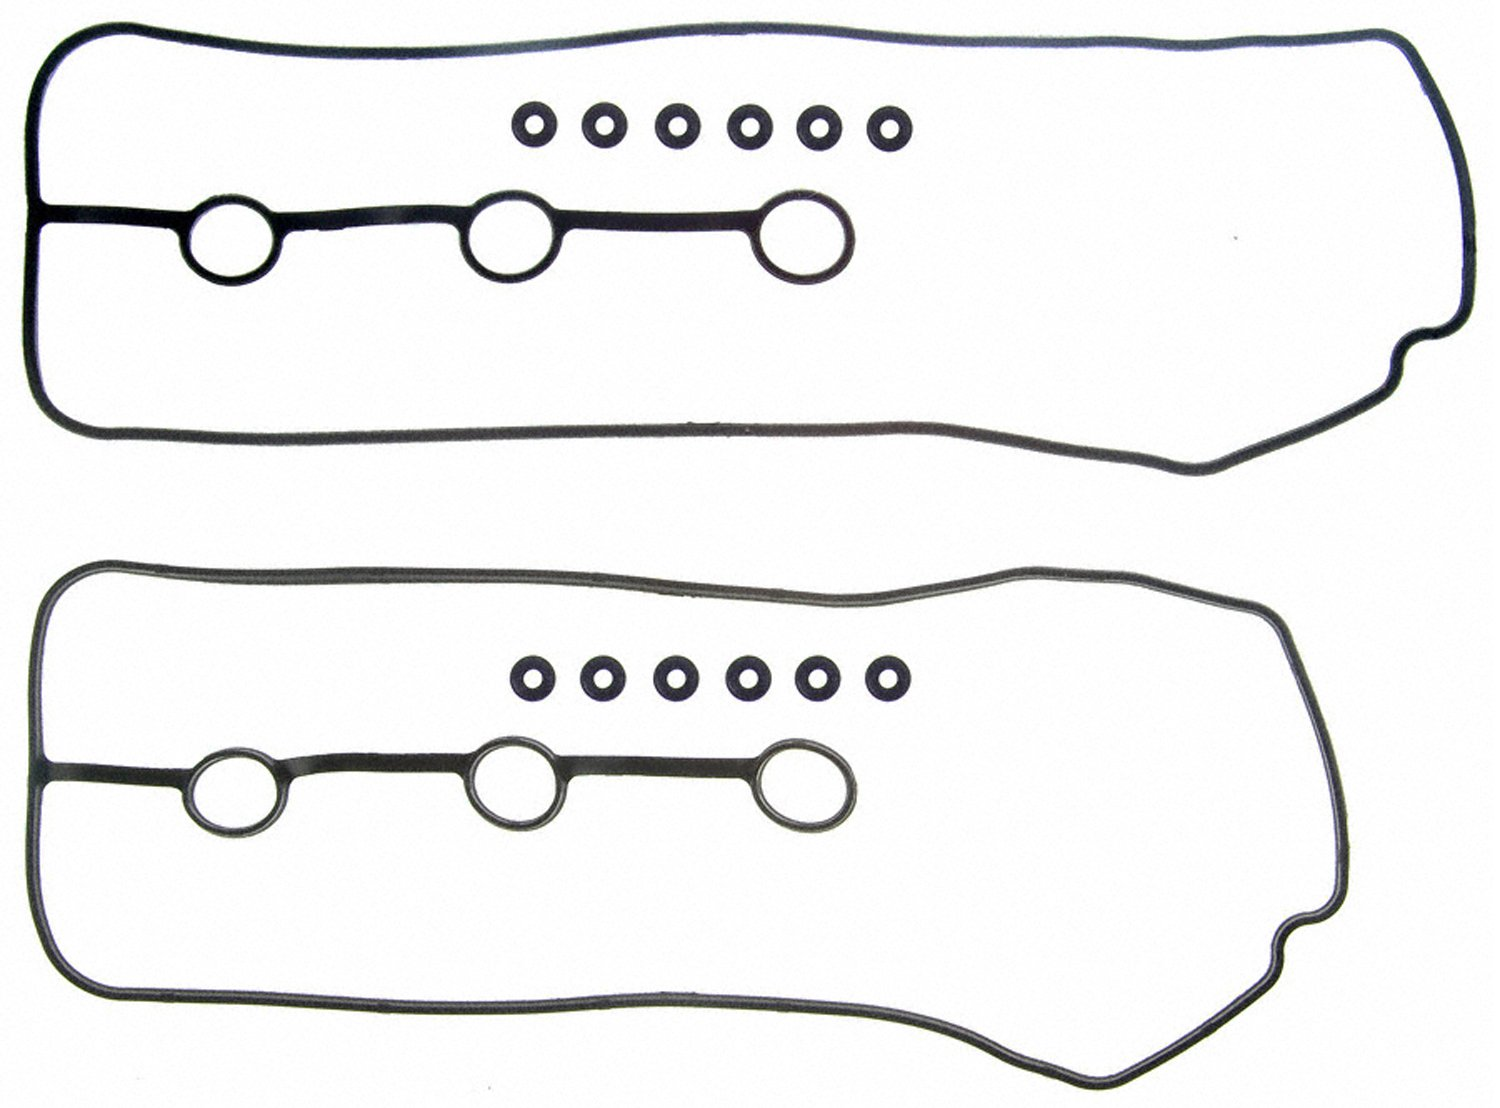 Fel Pro Vs 50634 R Valve Cover Gasket Set Automotive Jaguar S Type 2000 3 0 Fuse Box Diagram